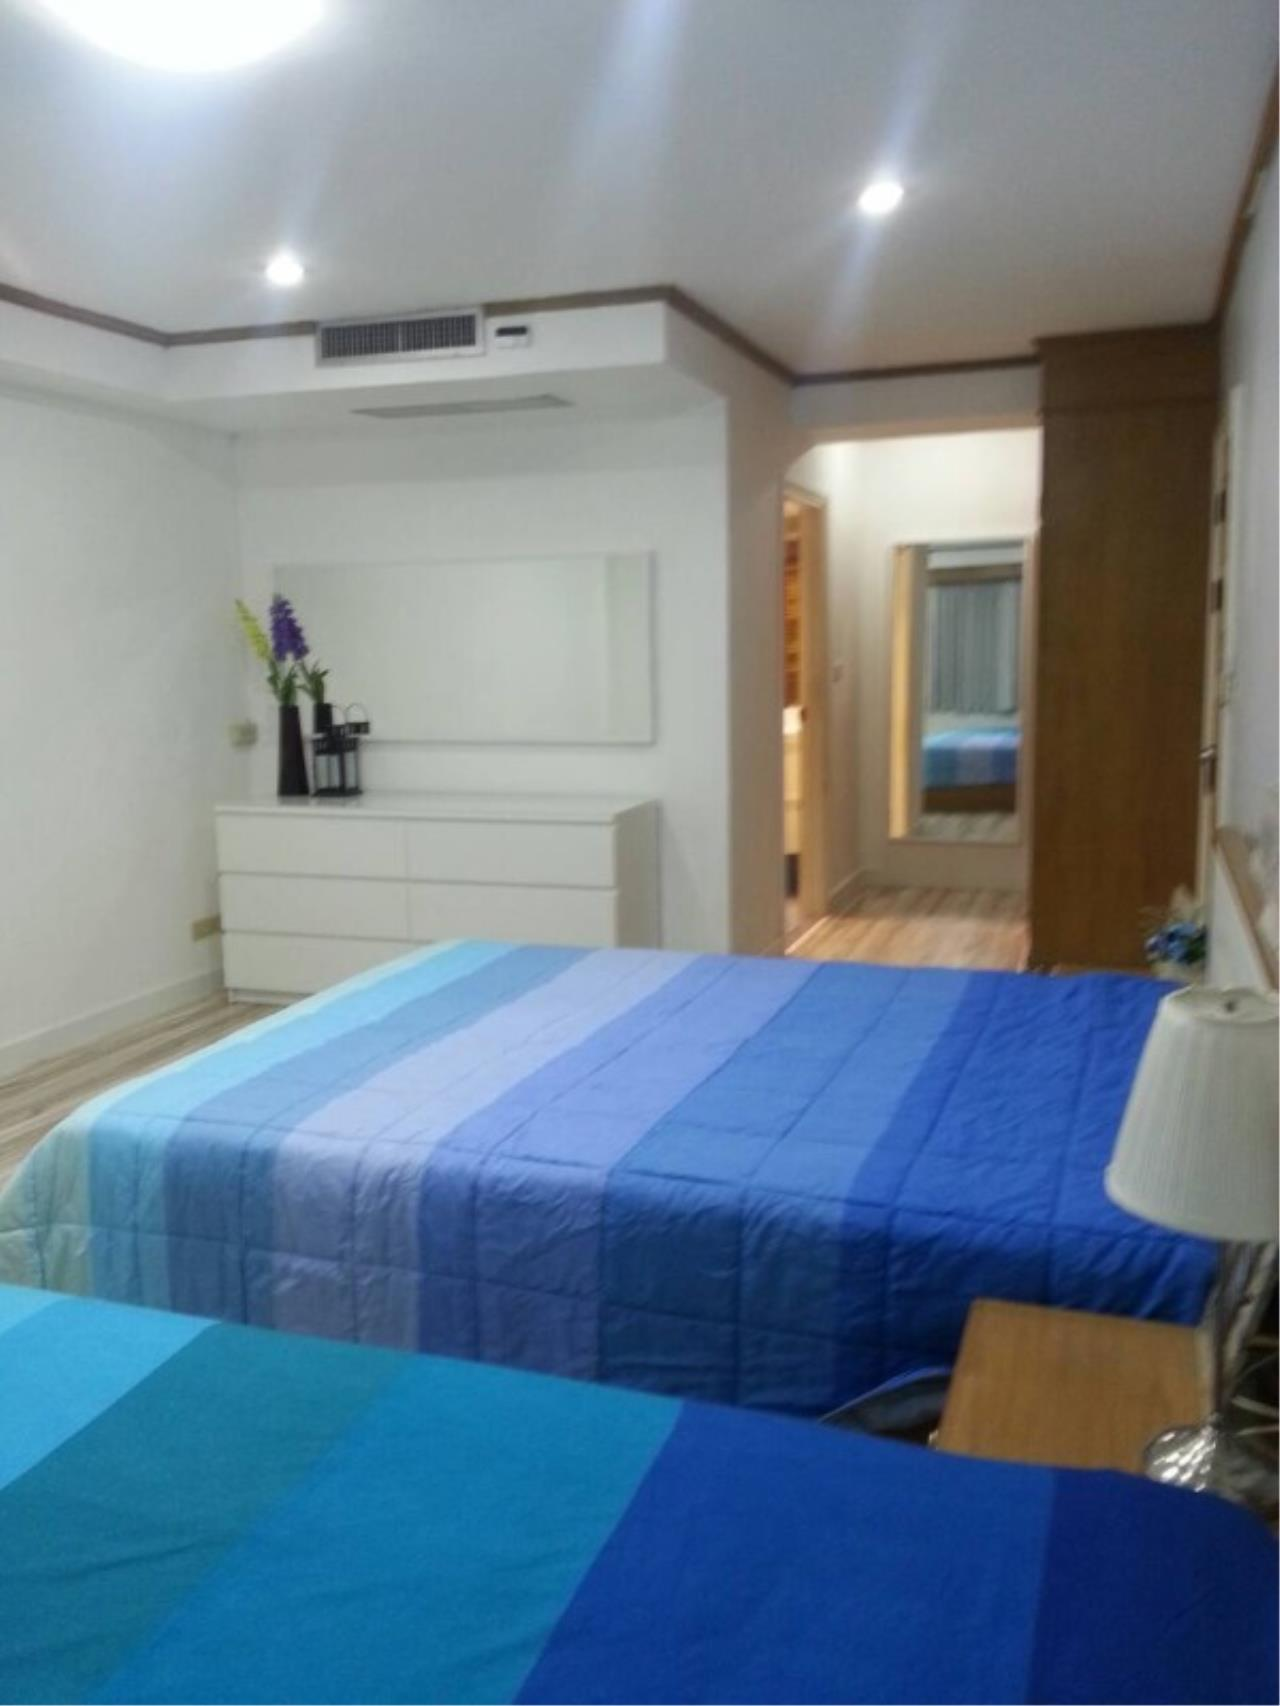 RE/MAX All Star Realty Agency's Royal Castle 4bed 4bath 202sqm for rent (BTS Phrom Phong) 11